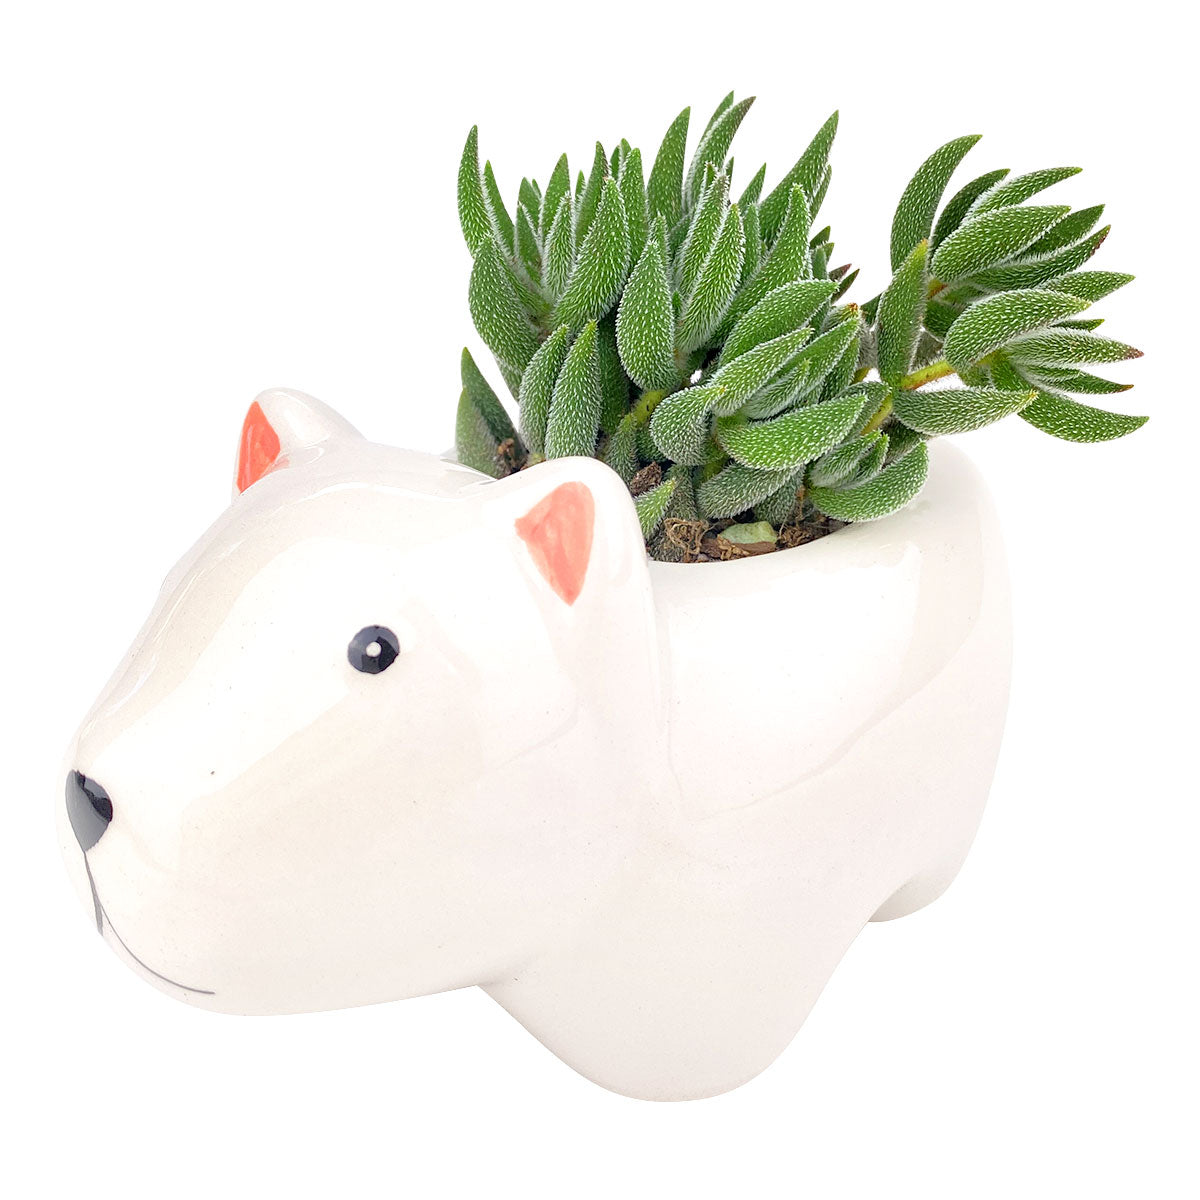 Ceramic Polar Bear Pot for sale, Cute Ceramic Succulent Pot, Polar Bear Planter Decor, Craft Supplies, Succulent Gift Ideas, Polar Bear Succulent Pot